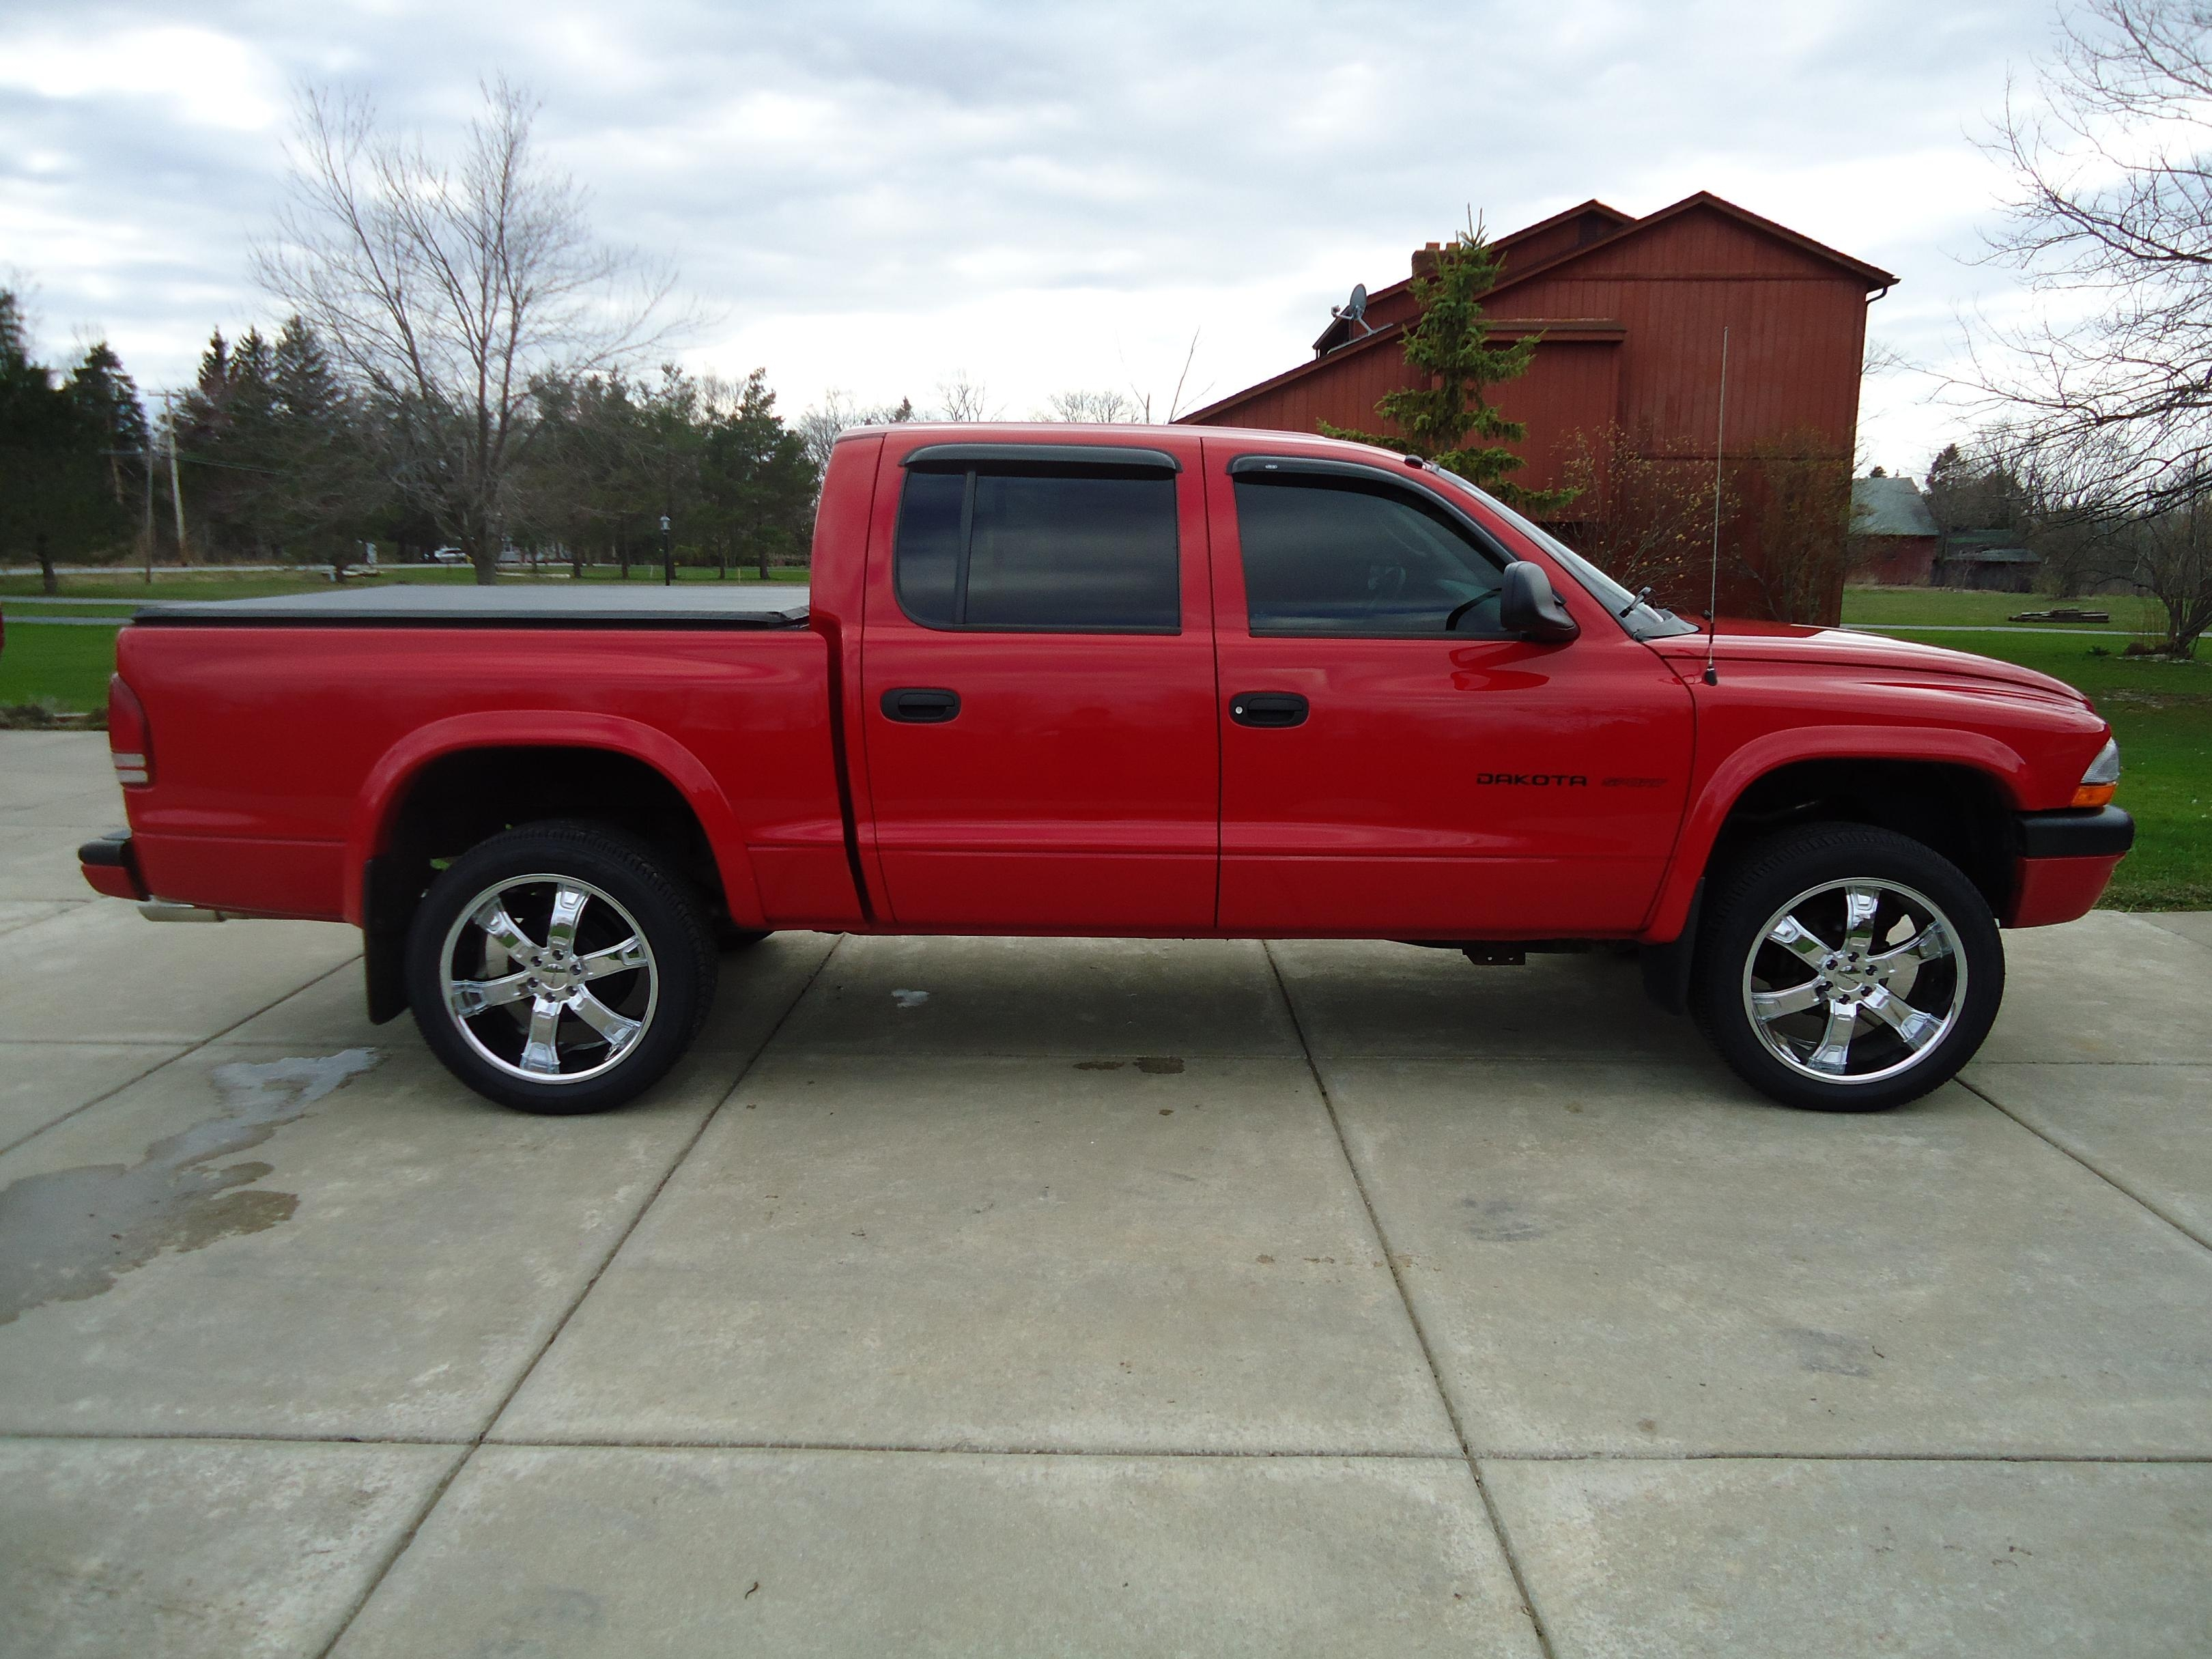 DodgeDak1030's 2002 Dodge Dakota Quad Cab